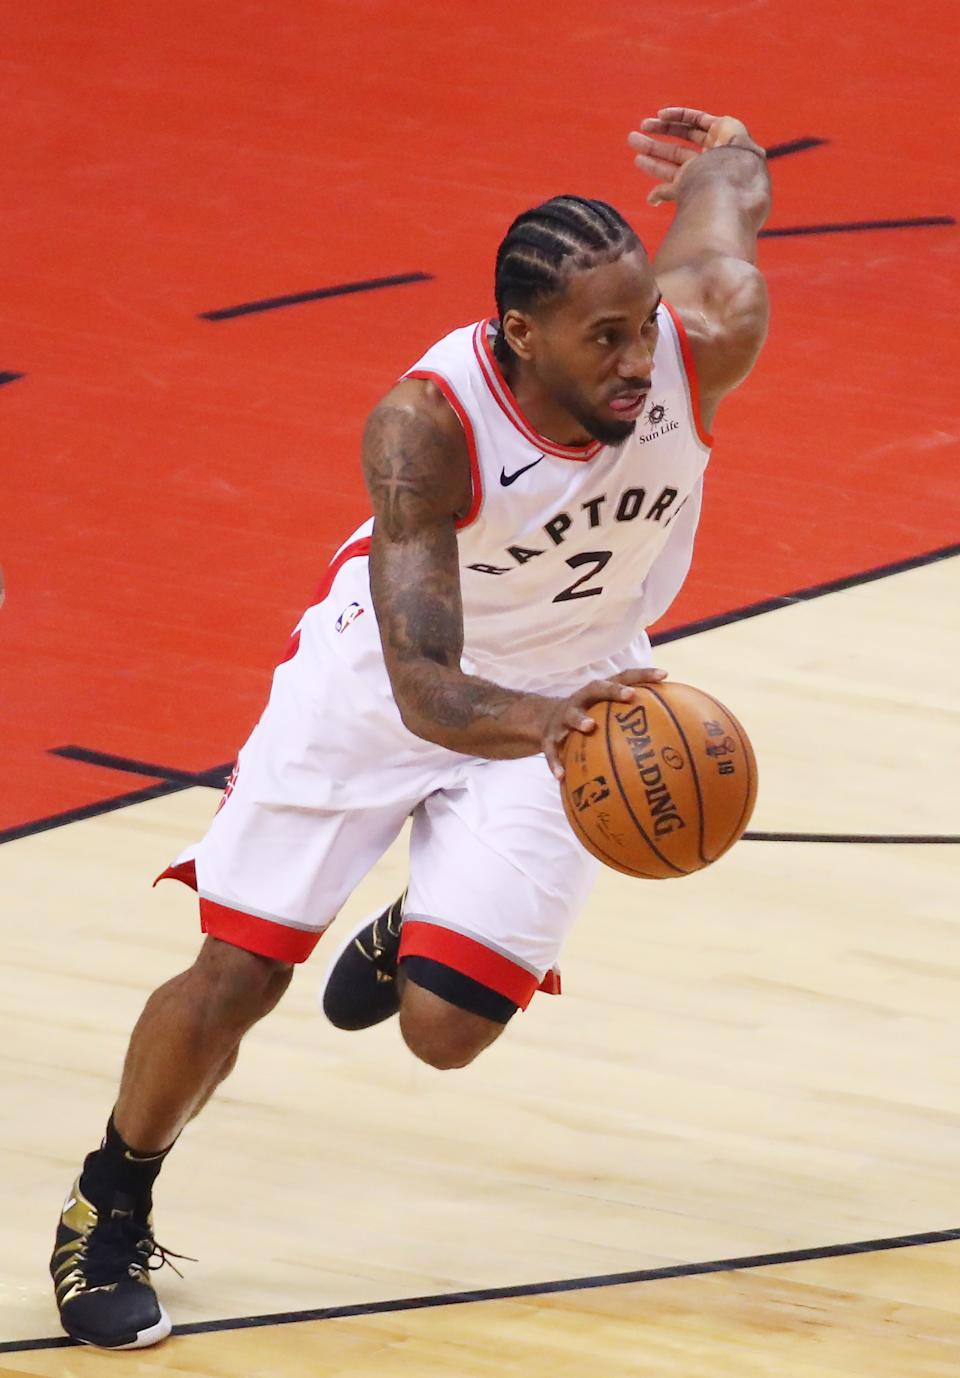 Kawhi Leonard #2 of the Toronto Raptors handles the ball on offense against the Golden State Warriors in the first quarter during Game One of the 2019 NBA Finals at Scotiabank Arena on May 30, 2019 in Toronto, Canada. (Photo by Gregory Shamus/Getty Images)